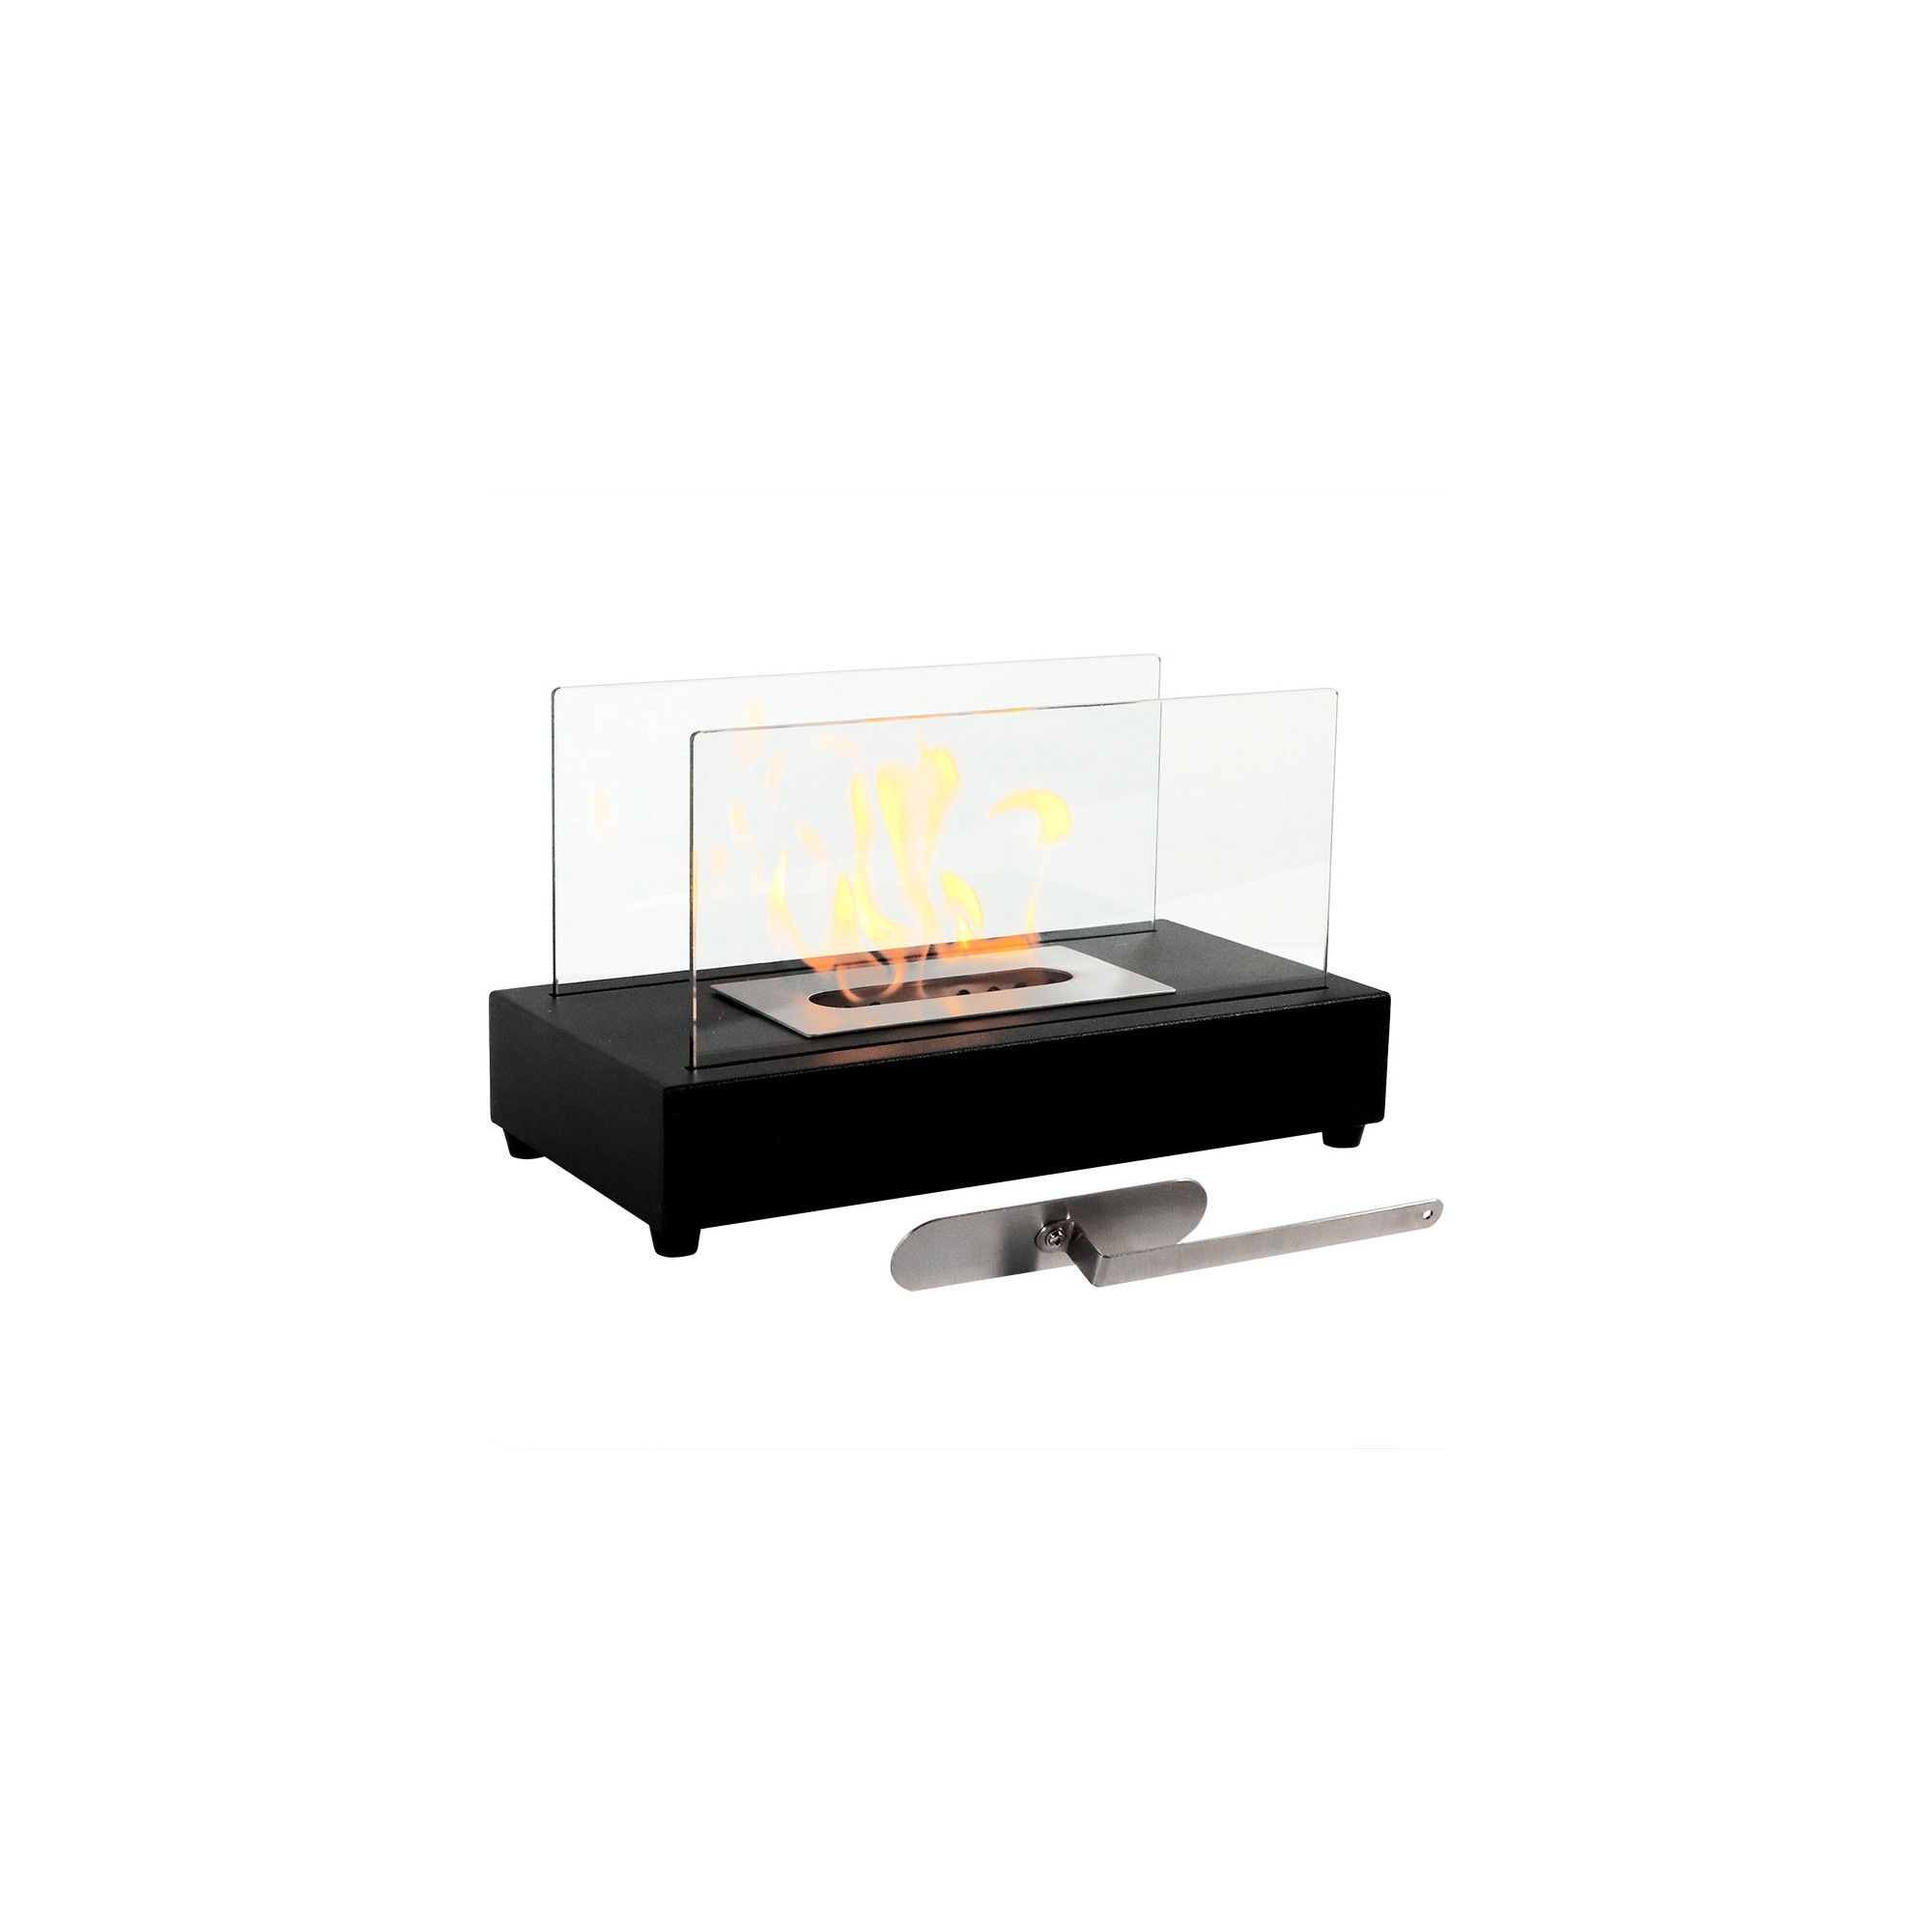 Sfeerhaard Bio Ethanol El Fuego Ventless Bio Ethanol Tabletop Fireplace Black